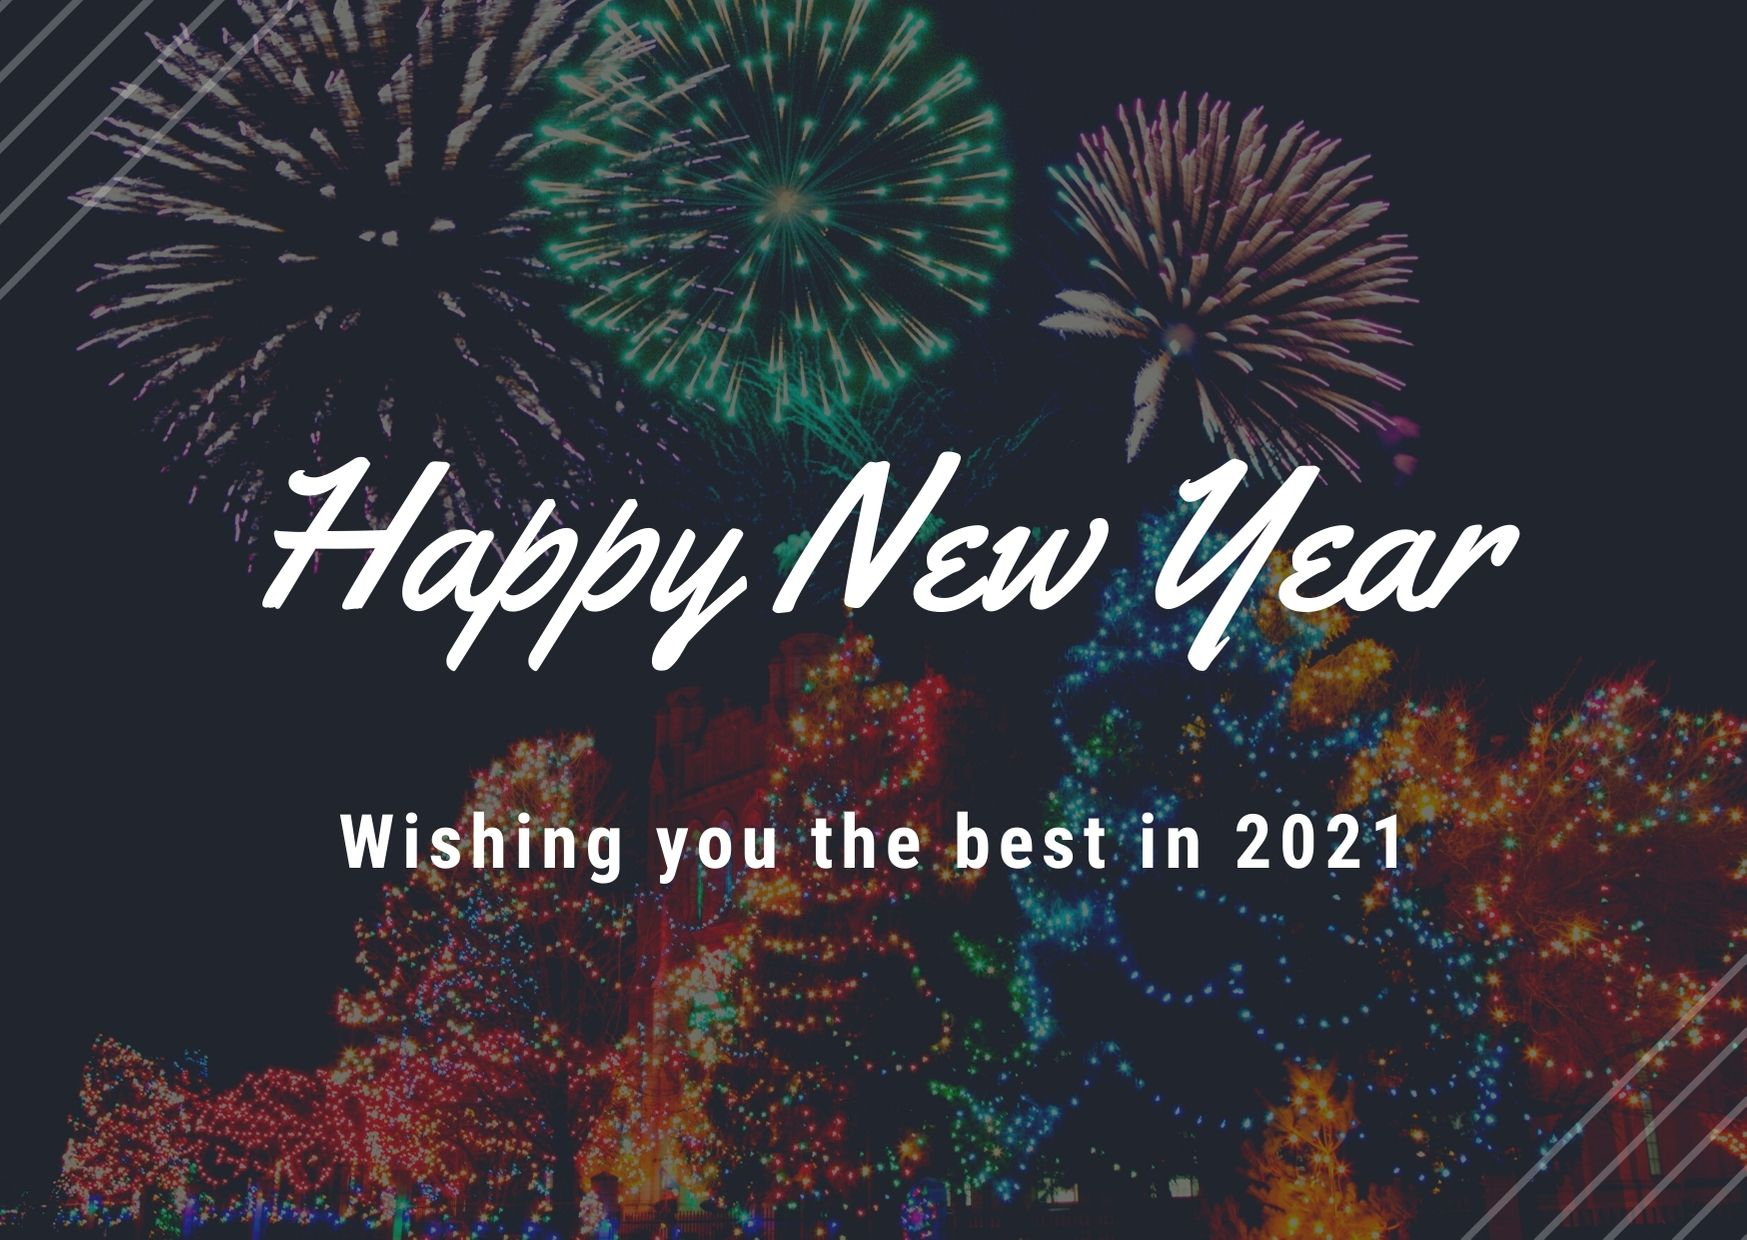 Happy New Year, wishing you the best in 2021.